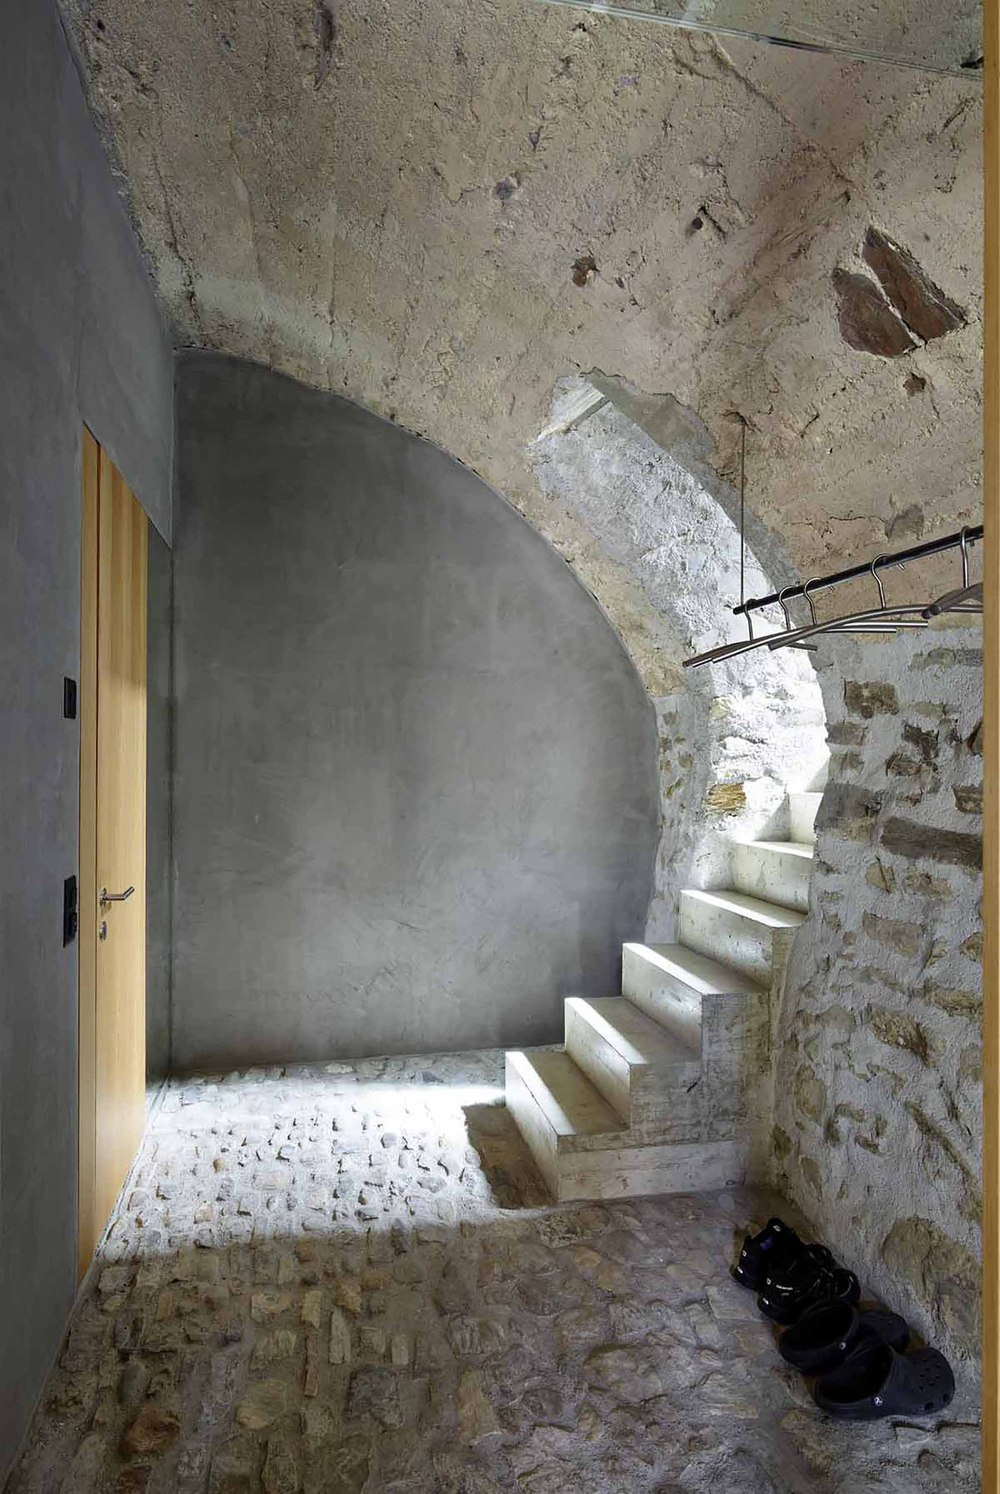 543dd679c07a80762d000254_stone-house-transformation-in-scaiano-wespi-de-meuron-romeo-architects_1430_cf031653.jpg